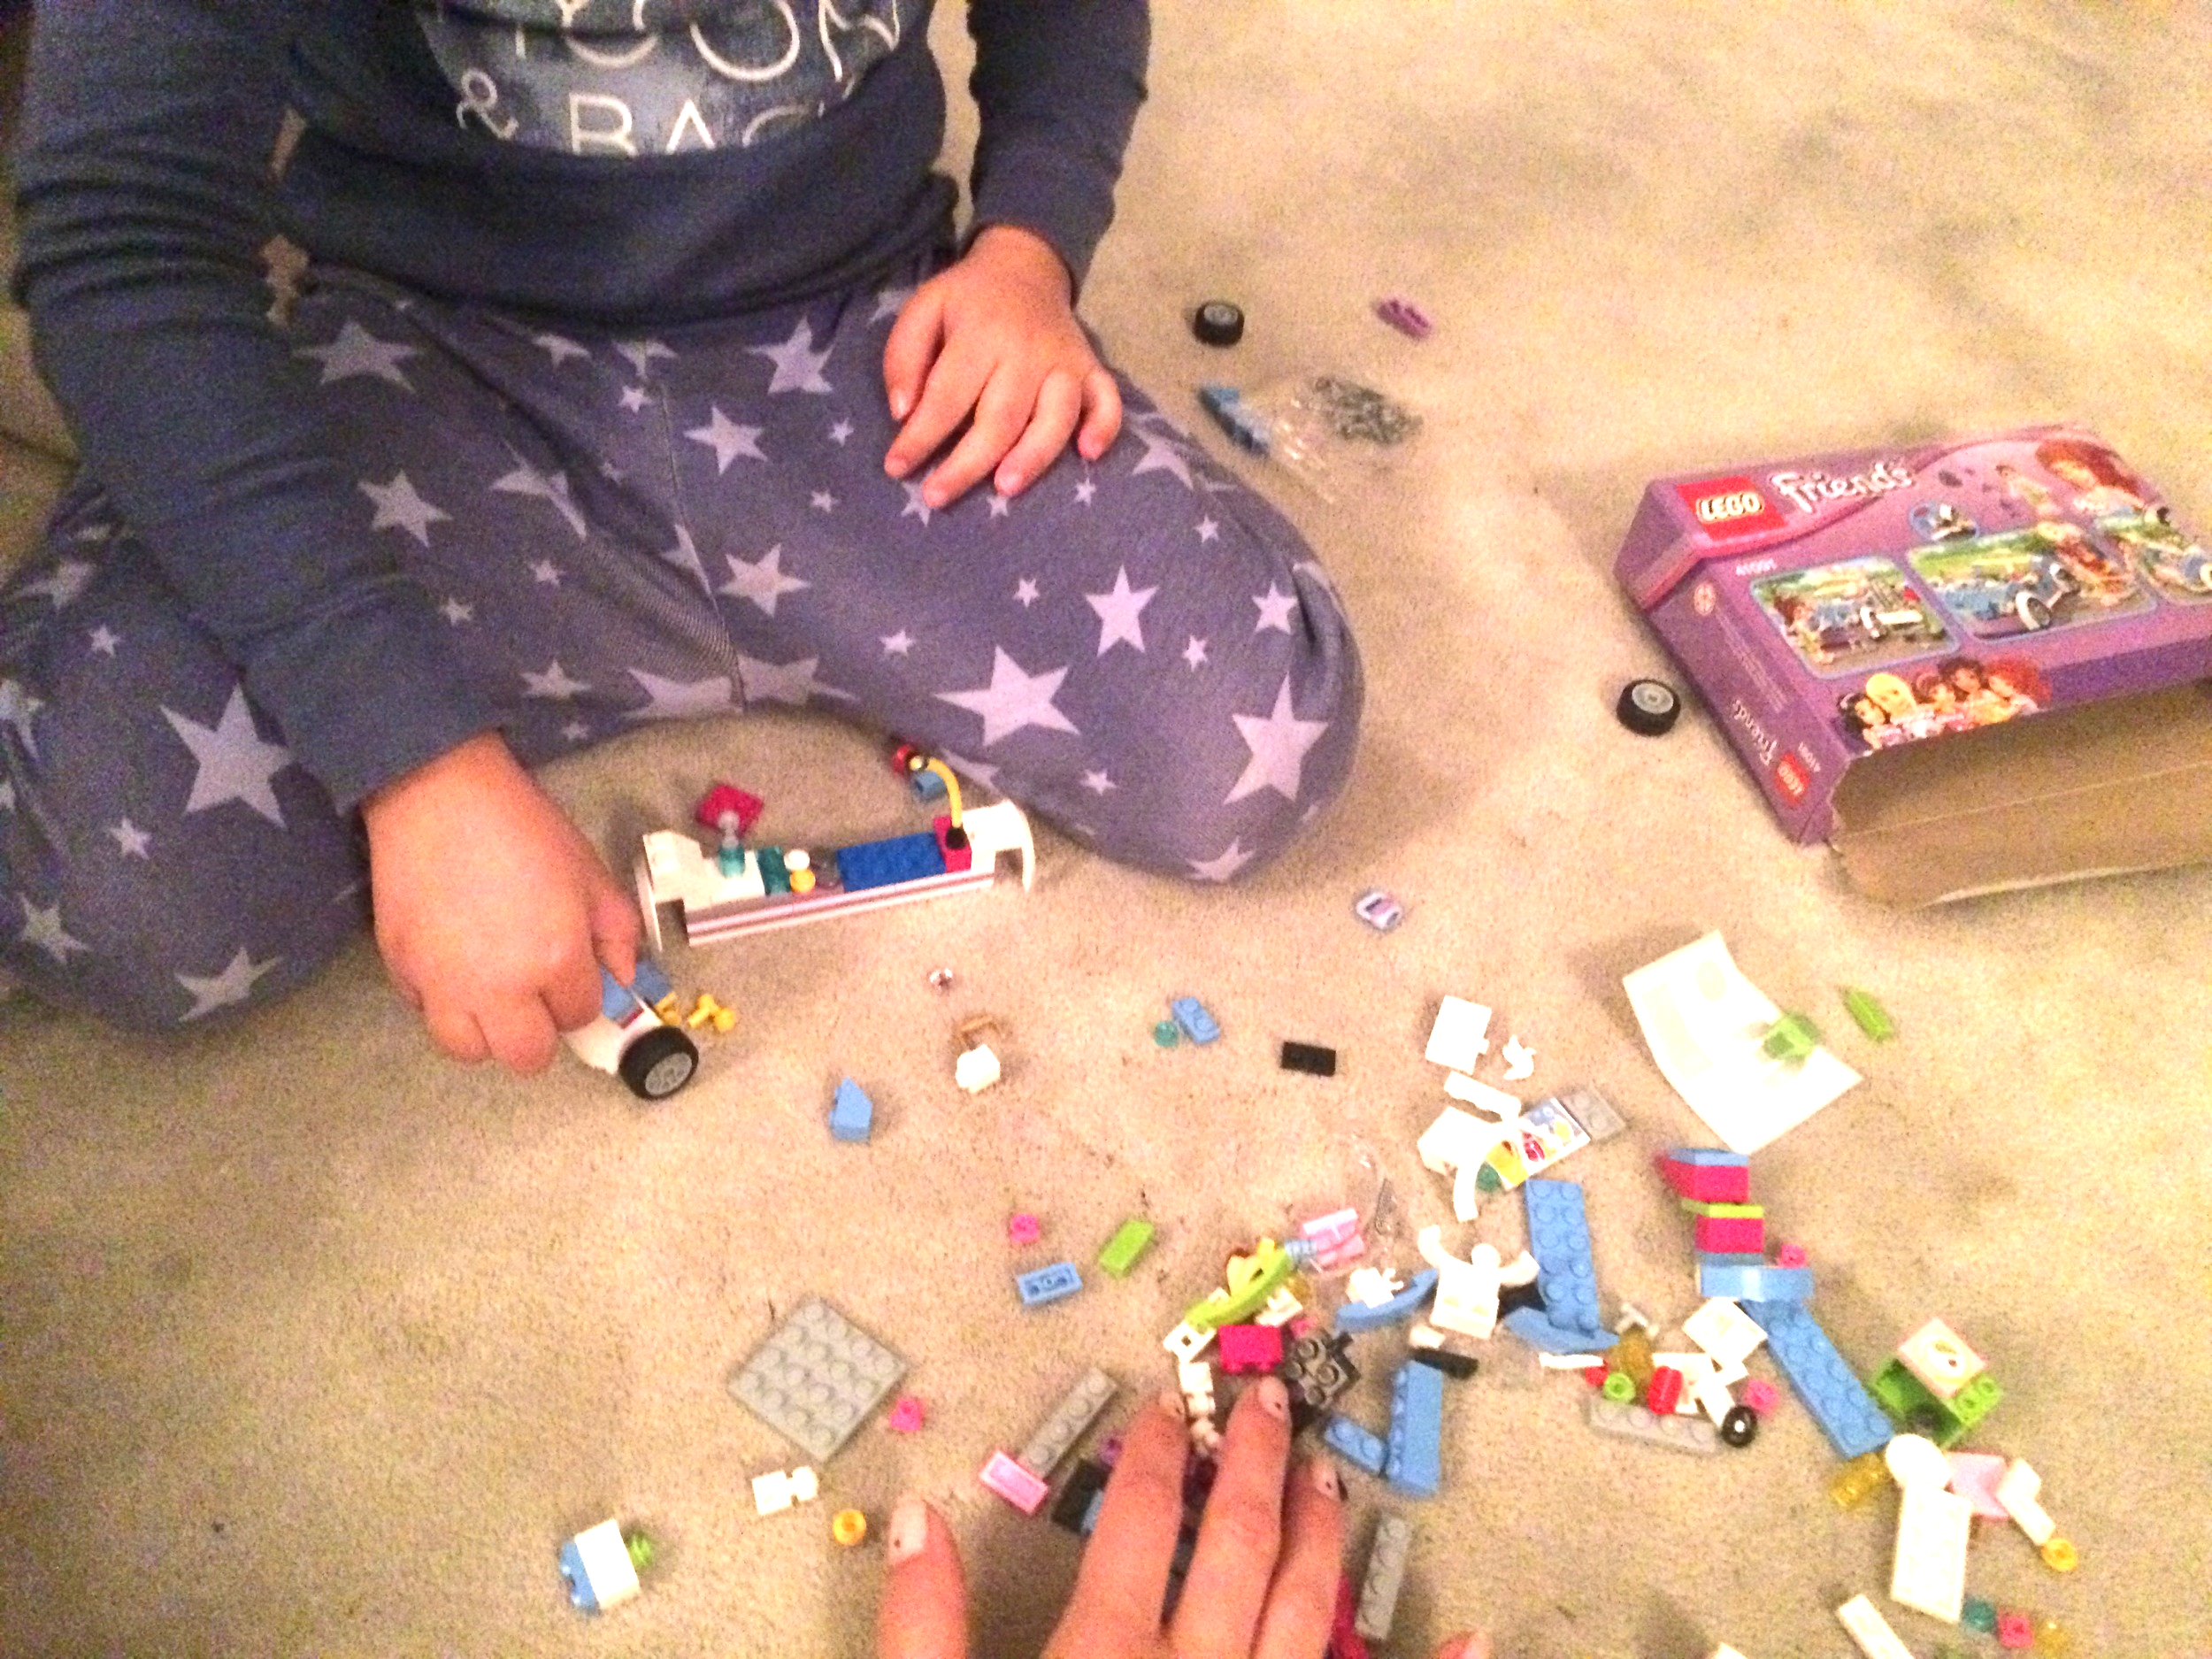 Lego time- Those small fun packs are perfect for storing for a sick day